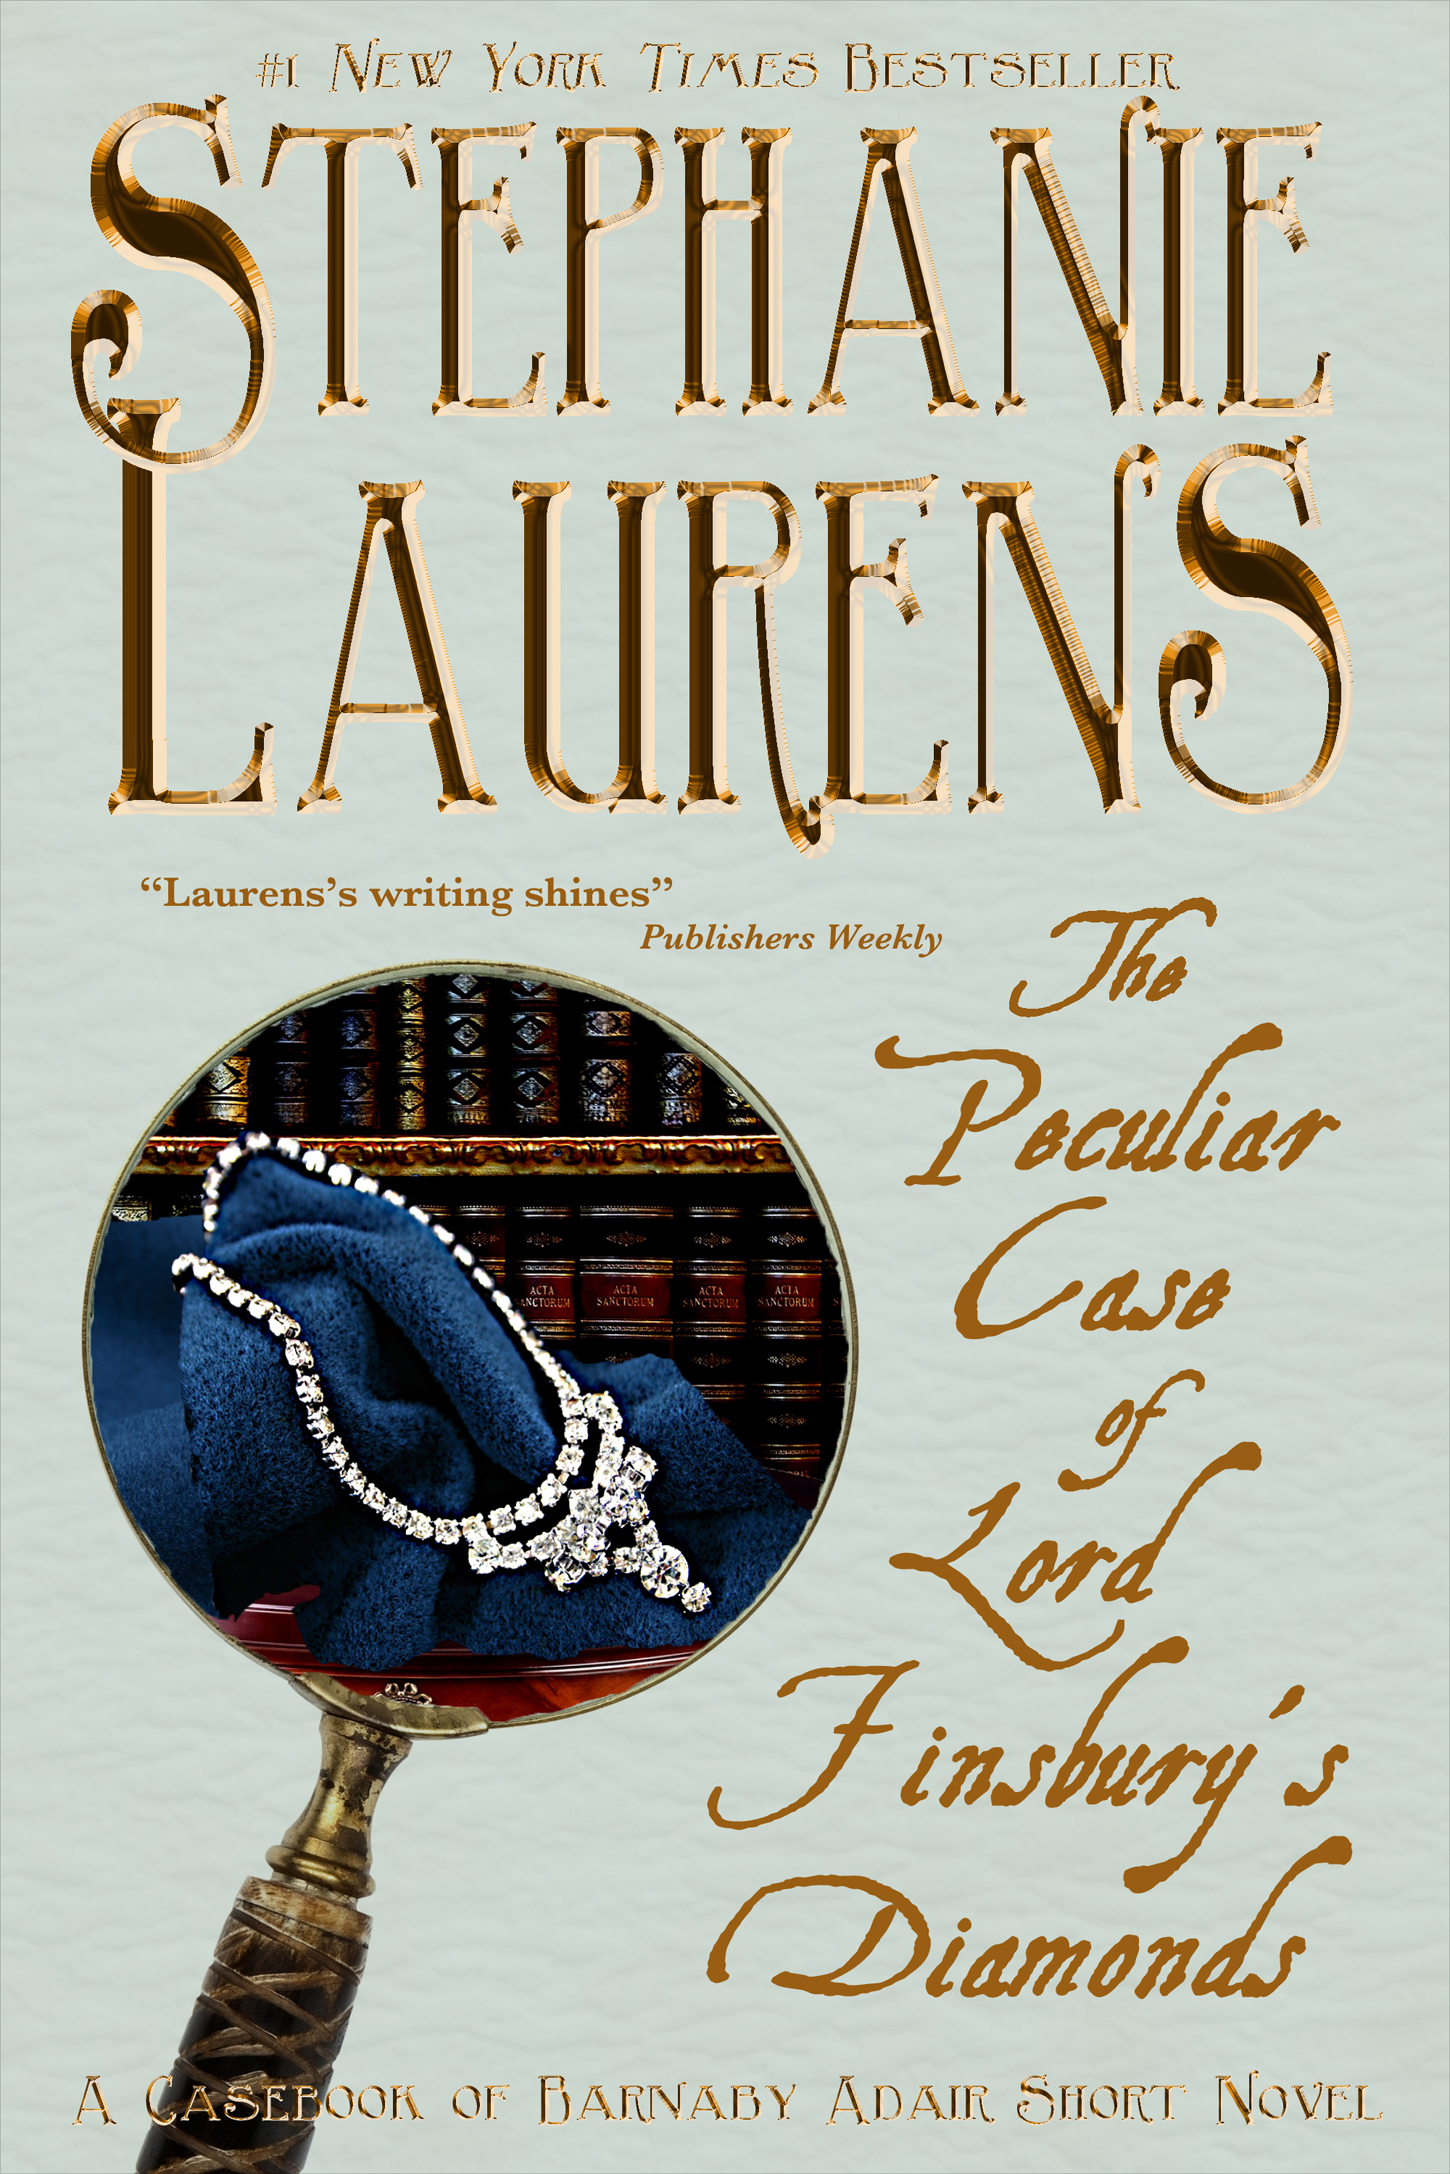 Stephanie Laurens - The Peculiar Case of Lord Finsbury's Diamonds